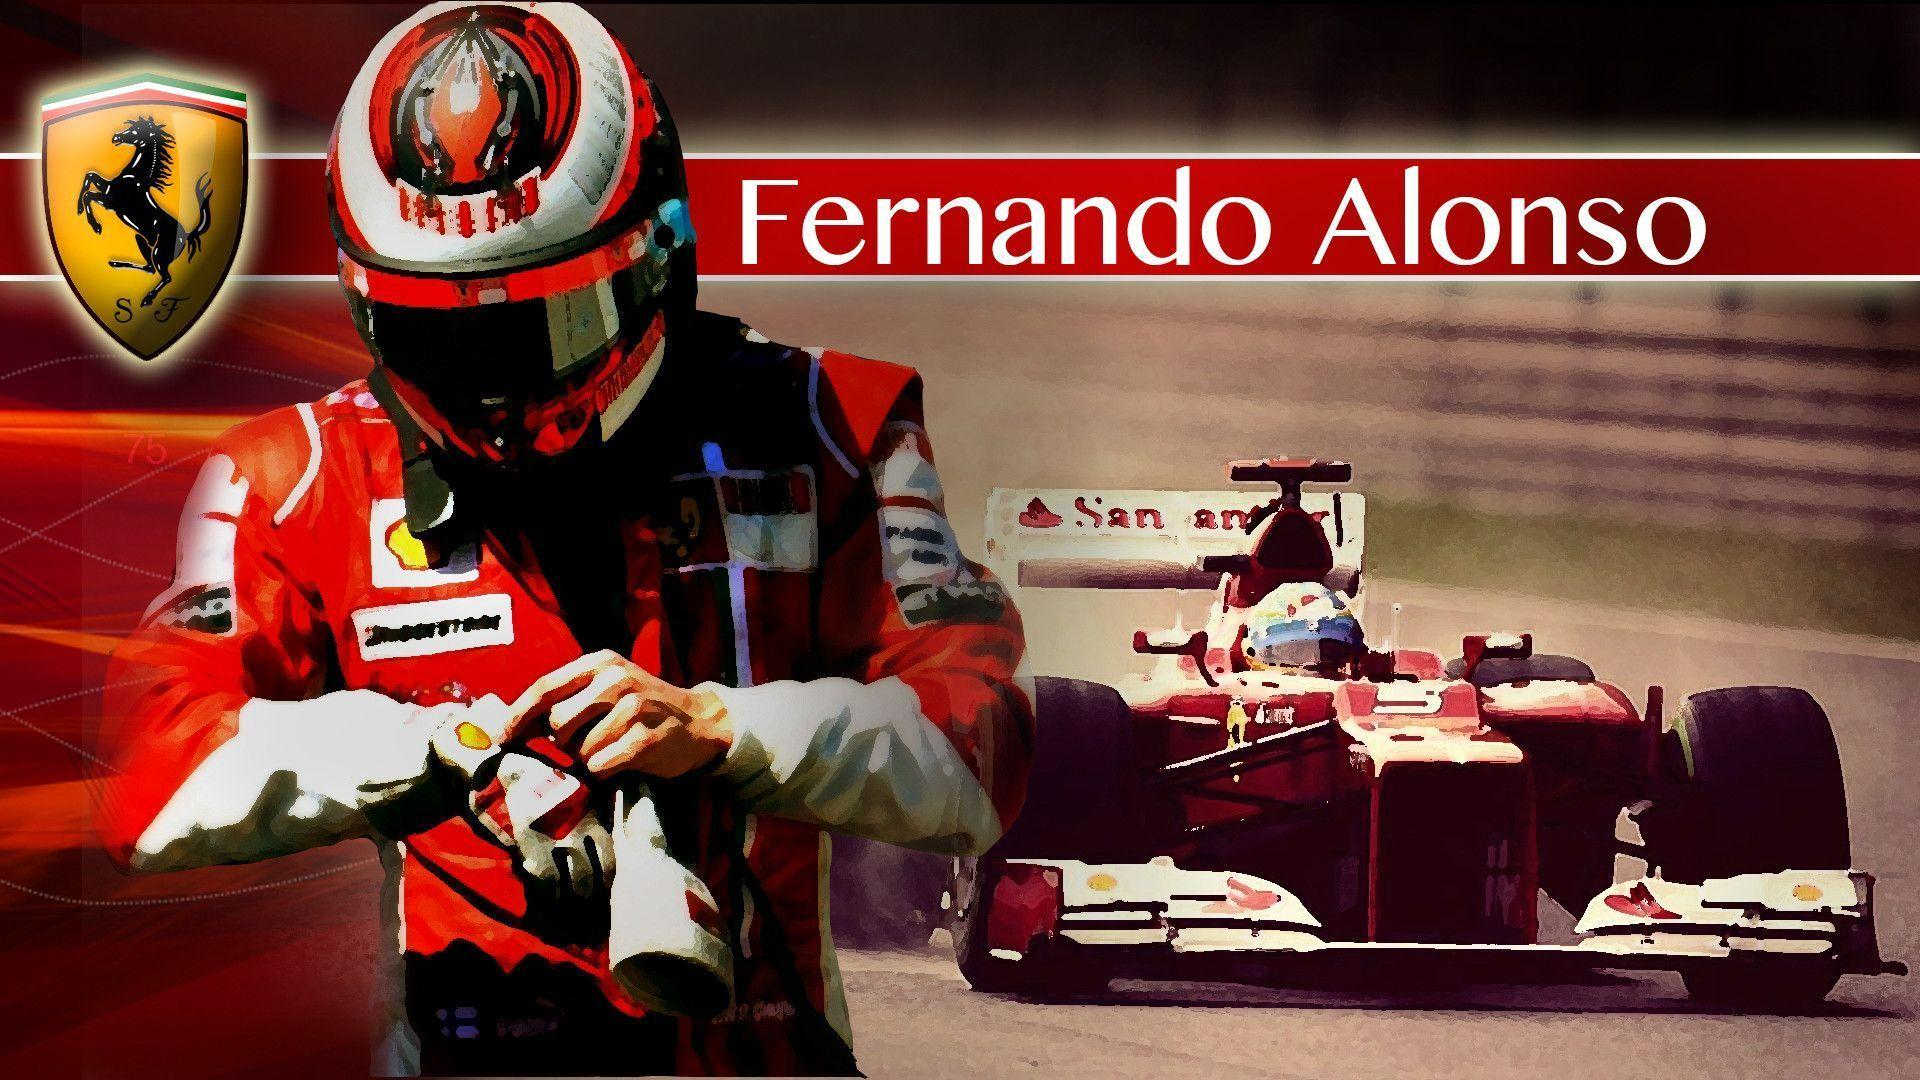 fernando alonso wallpapers and - photo #5